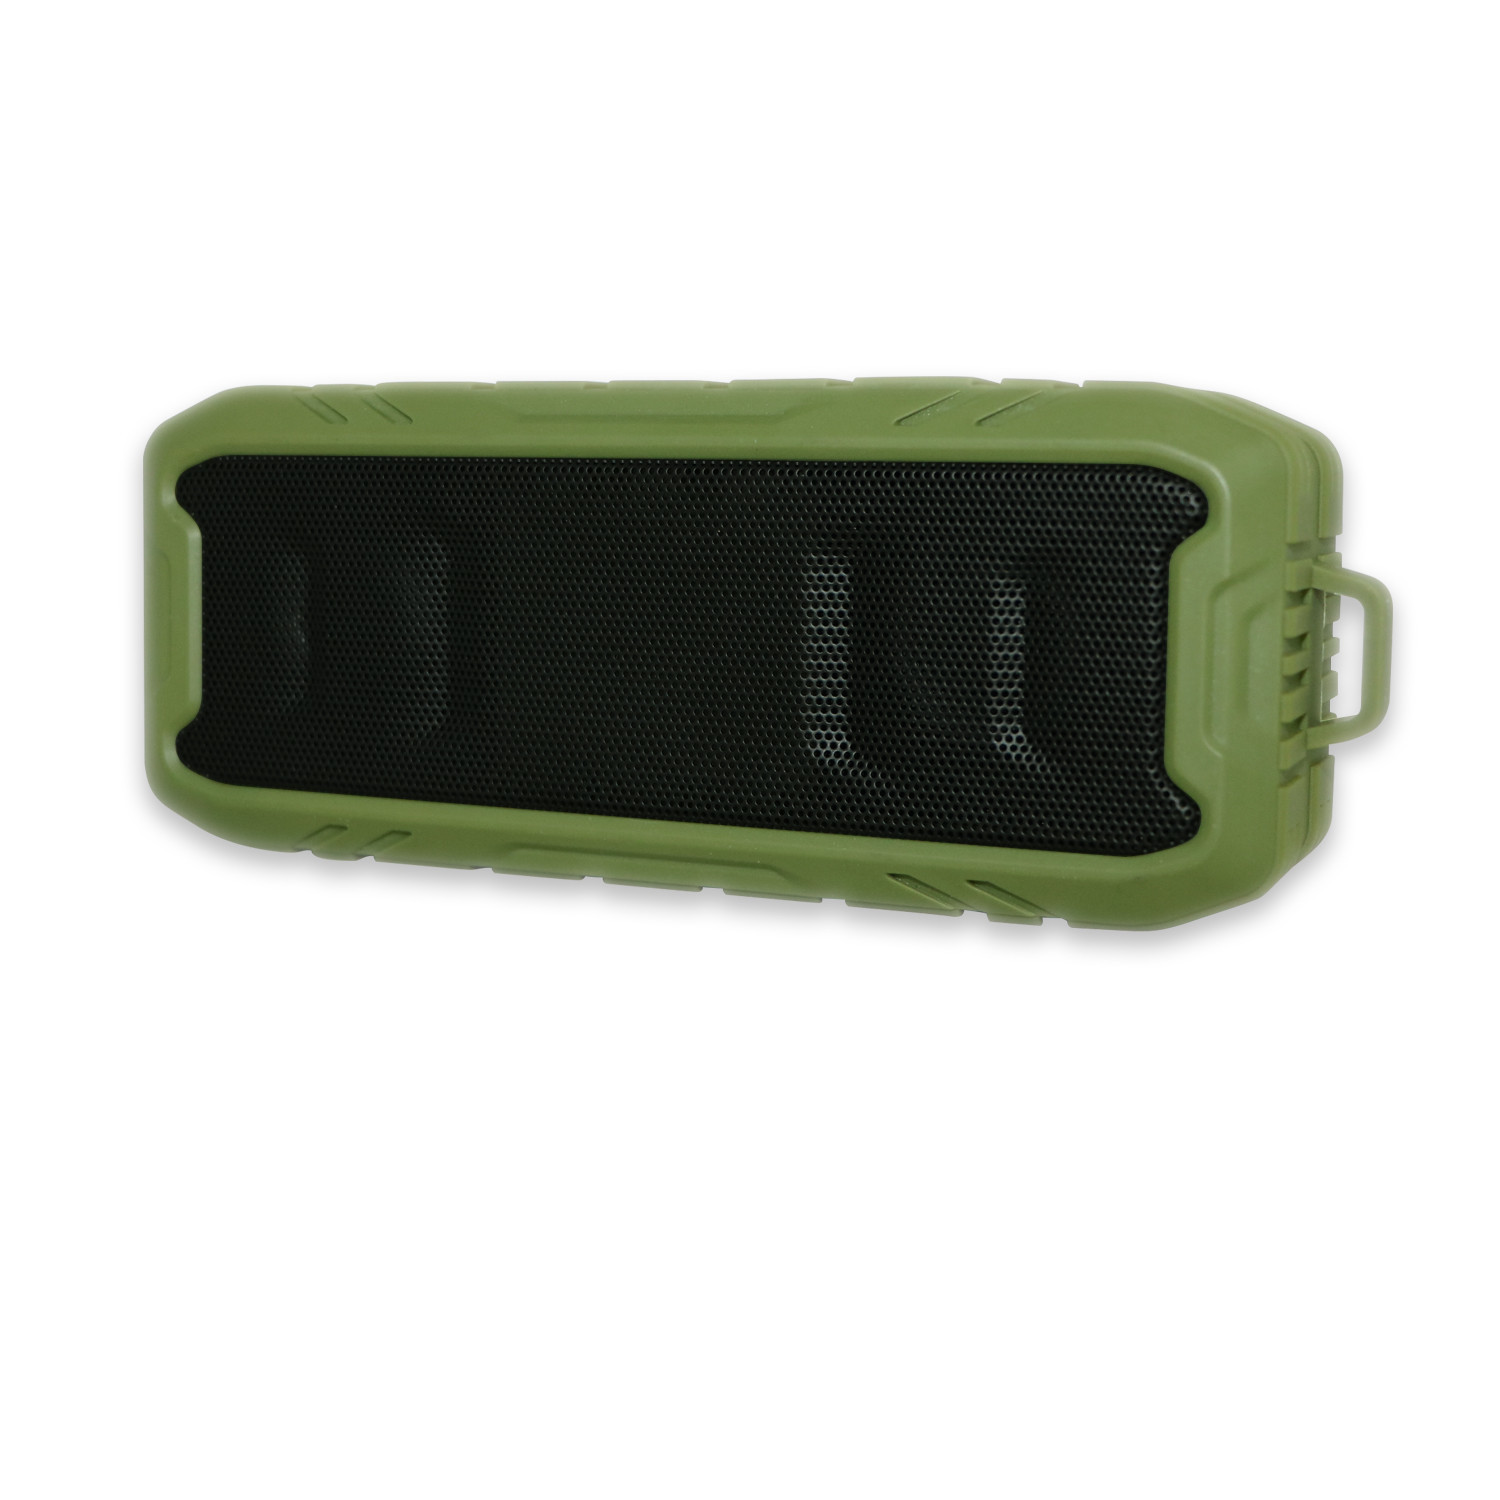 touch wireless exquisite OEM bluetooth speaker Winbridge